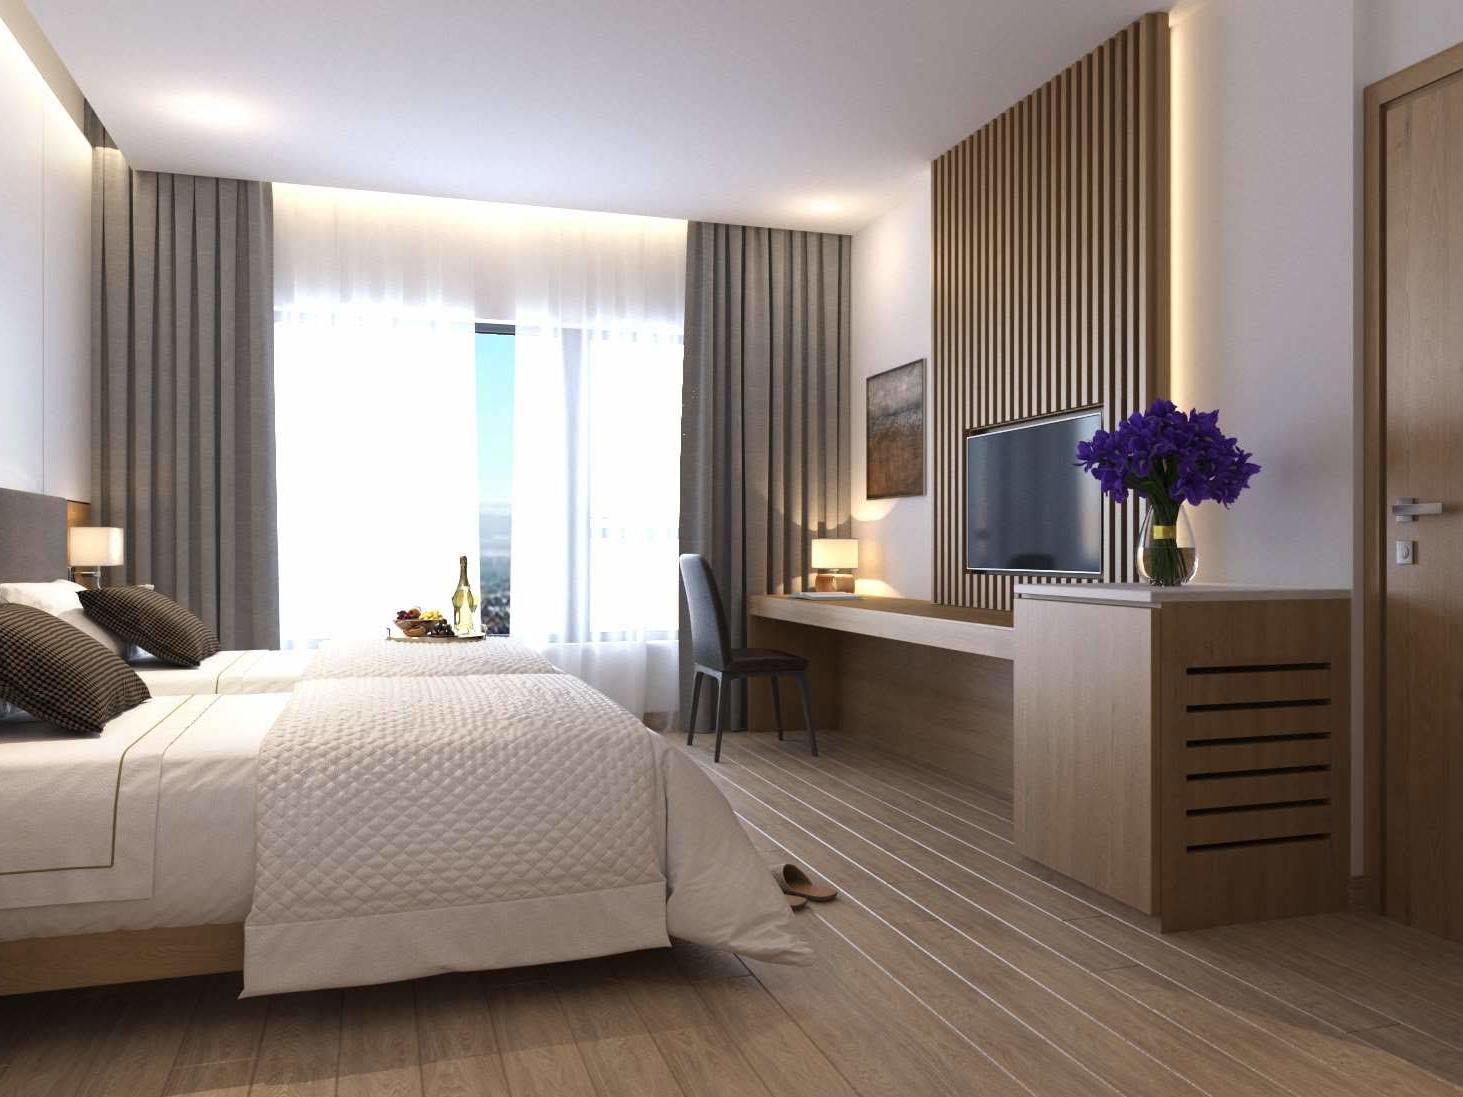 hotel room interior with twin bed, contemporary furnishings and television